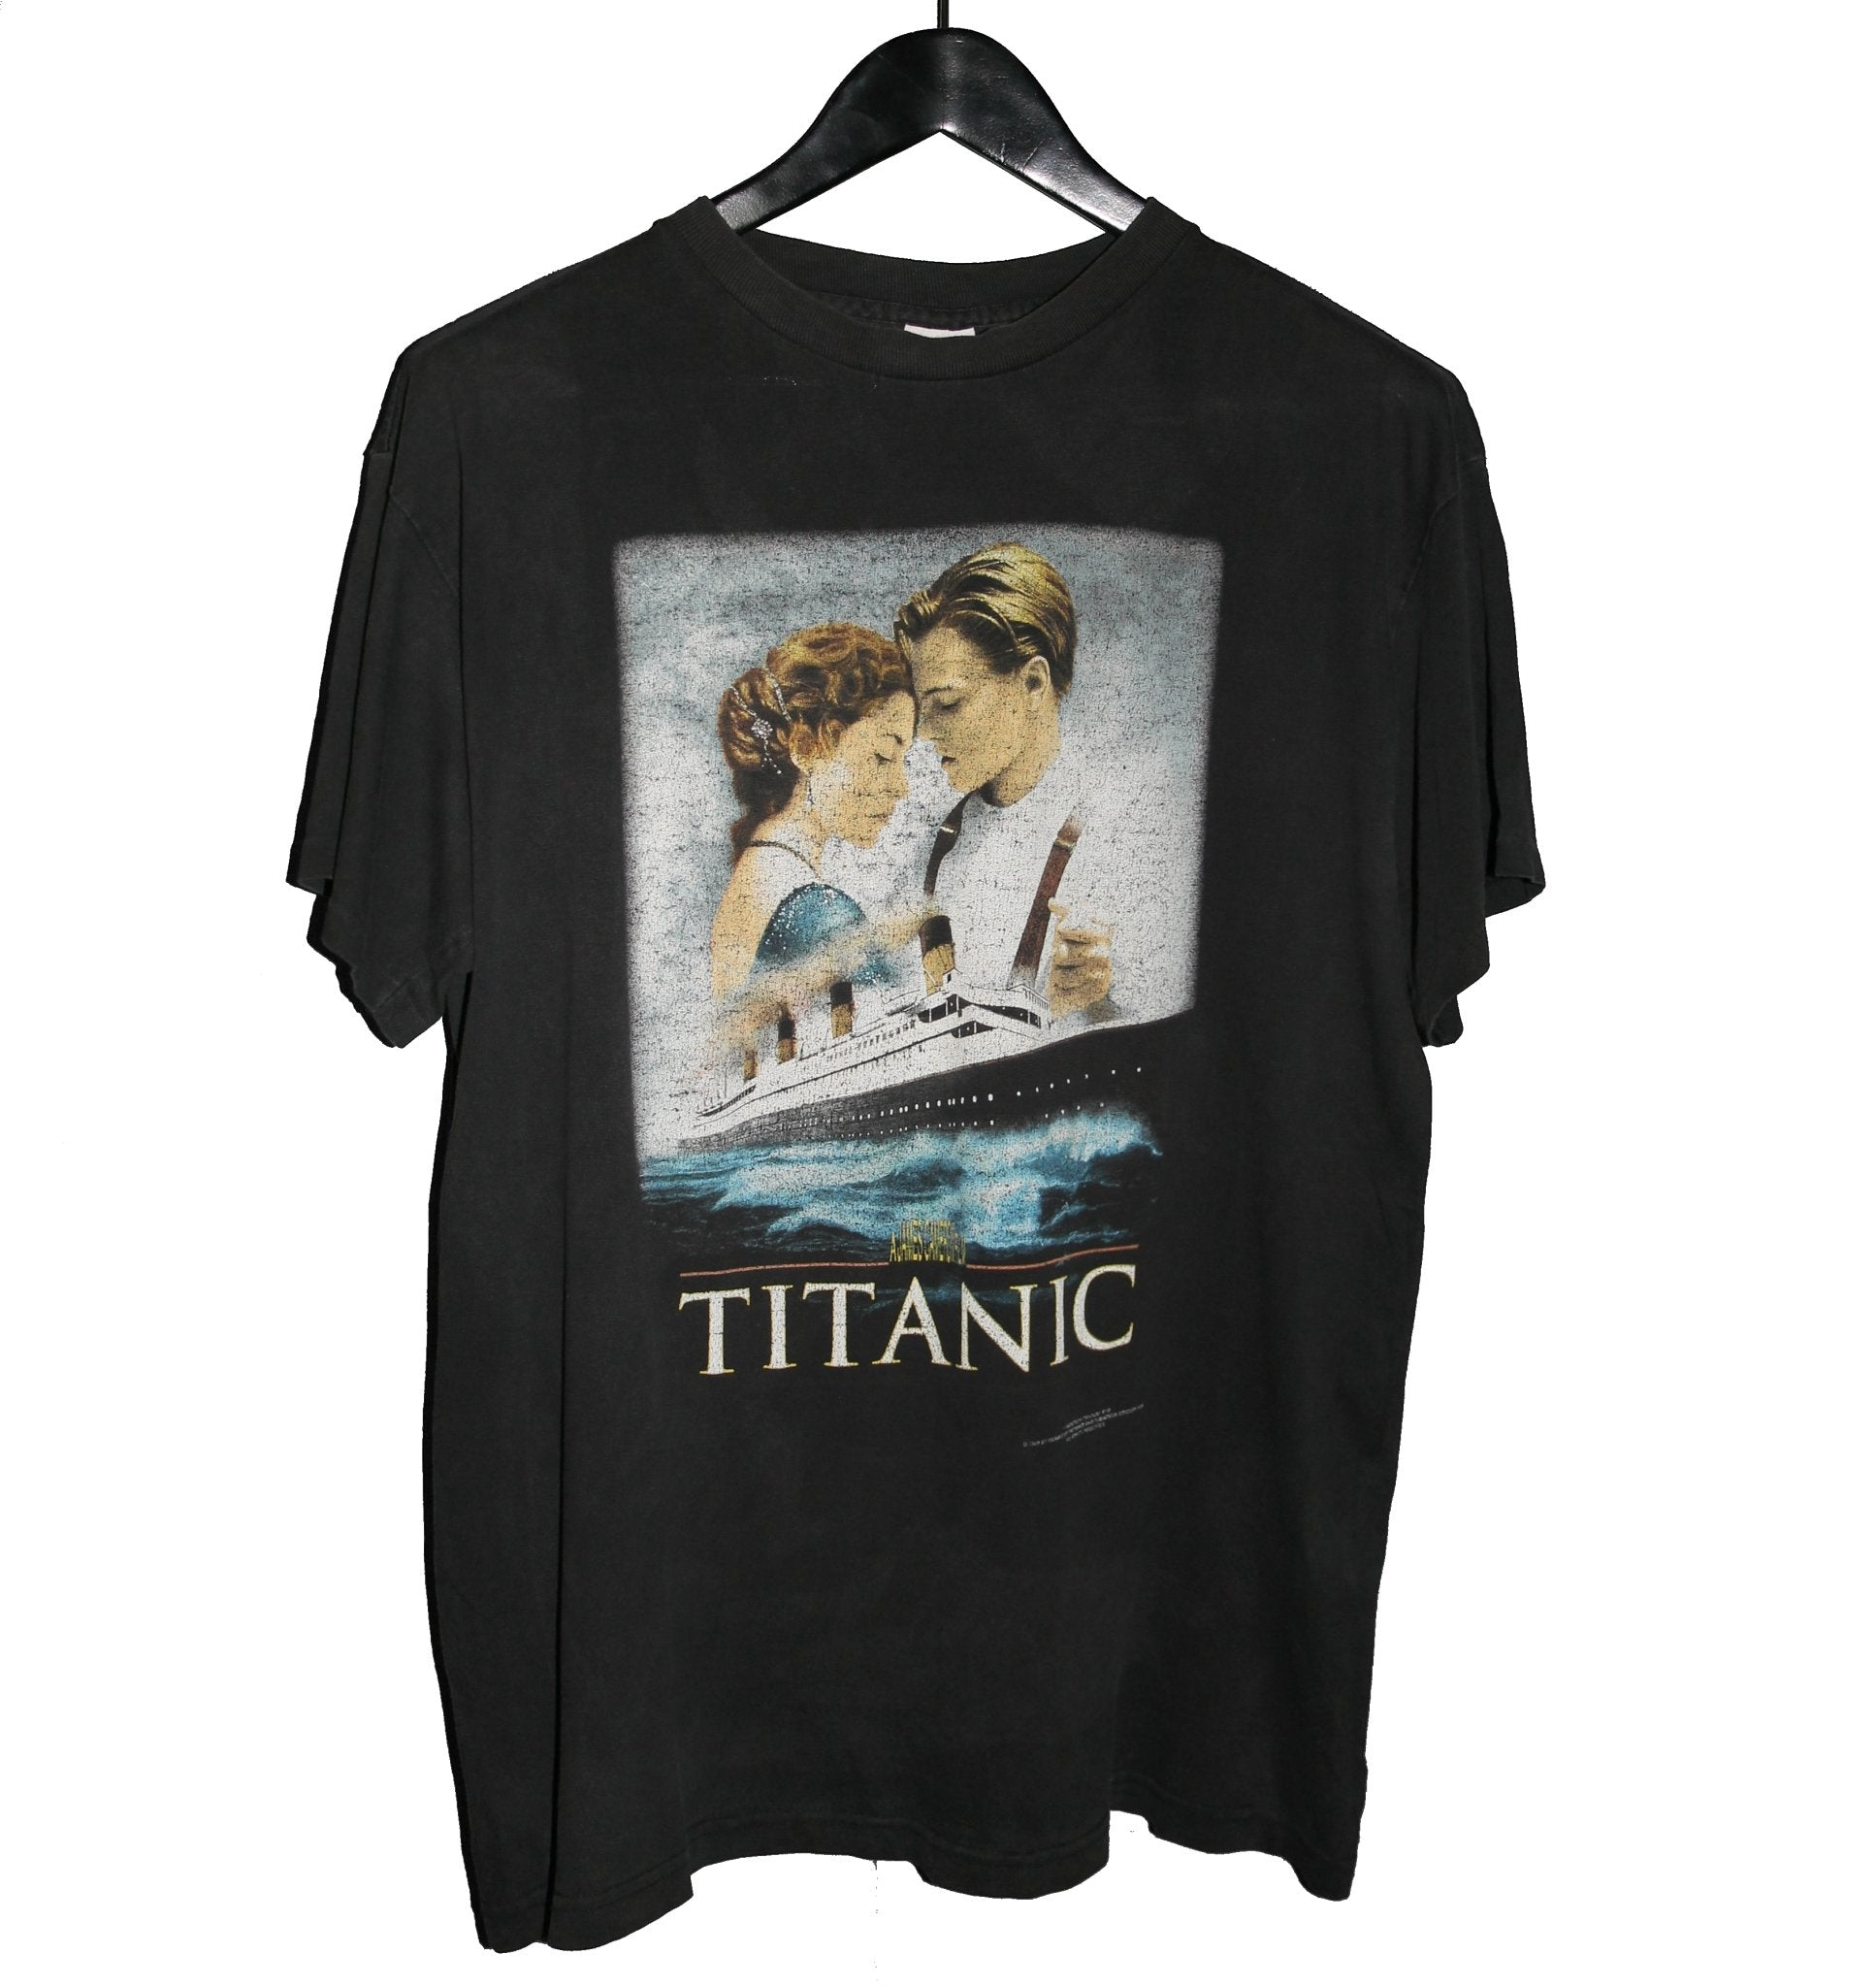 Titanic 1998 Movie Shirt - Faded AU